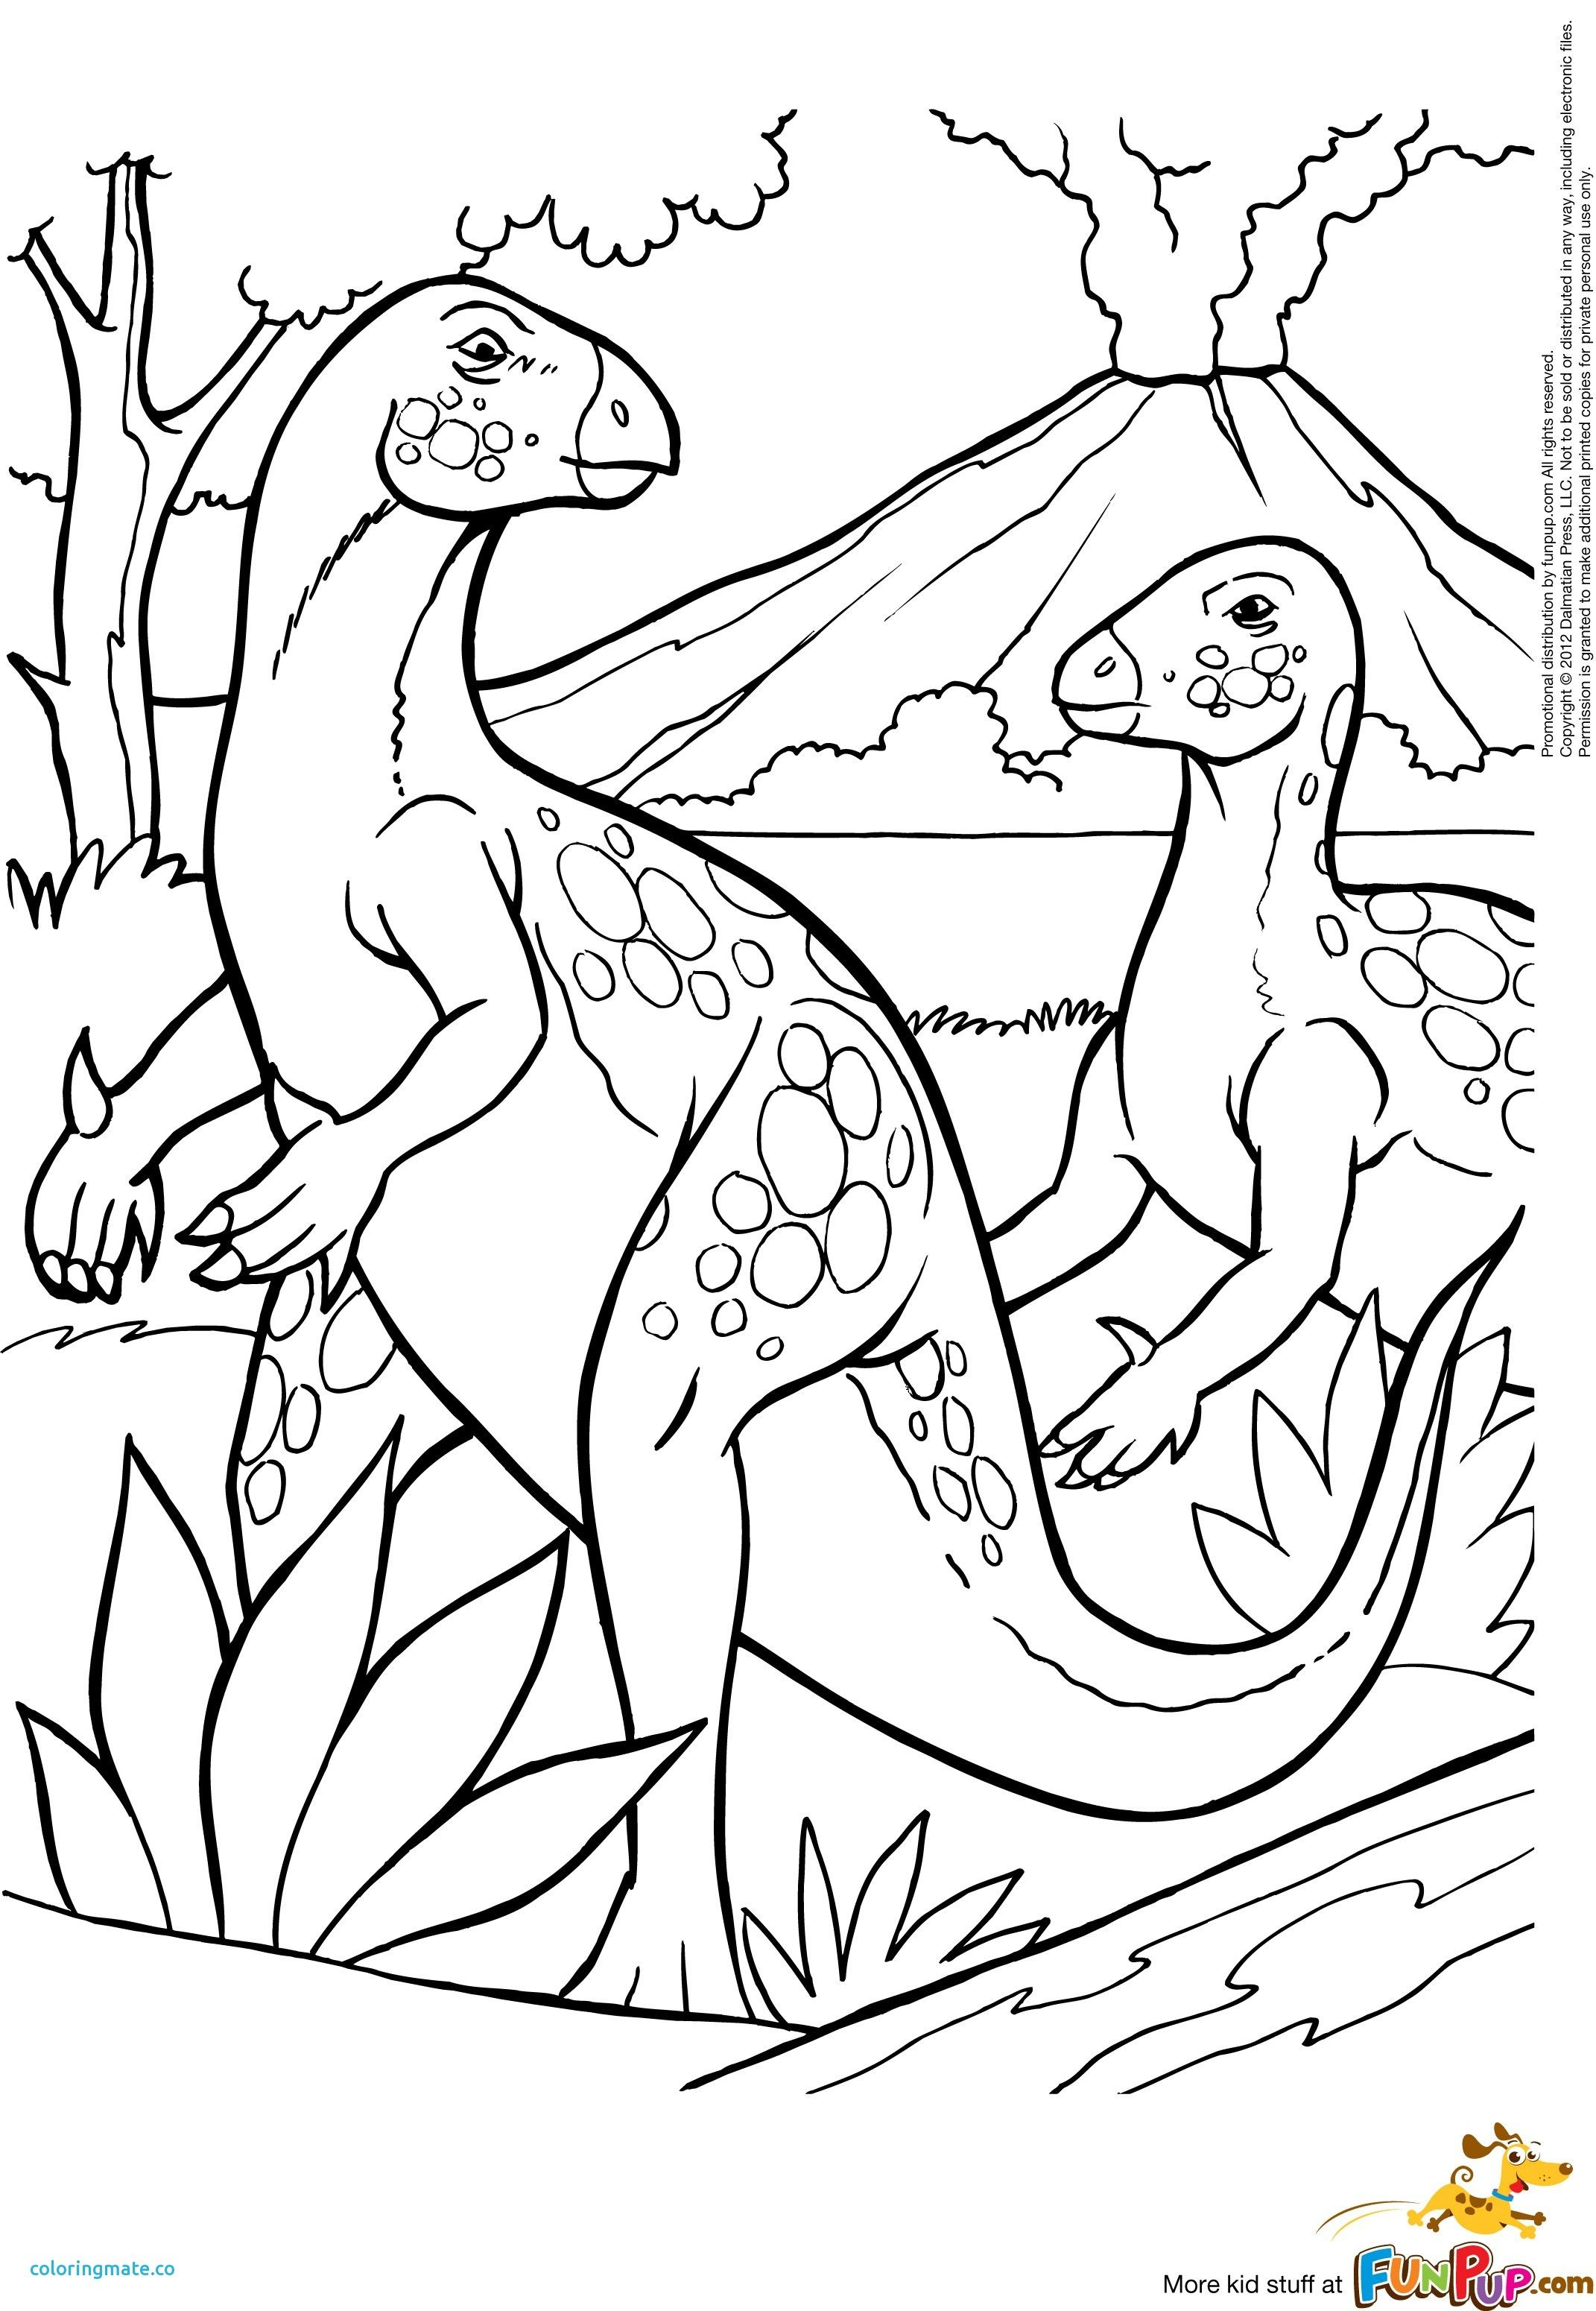 Coloriage Mandala Volcan.Dinosaurs With Volcano 0 00 Dinosaurs For Kids Pinterest Of